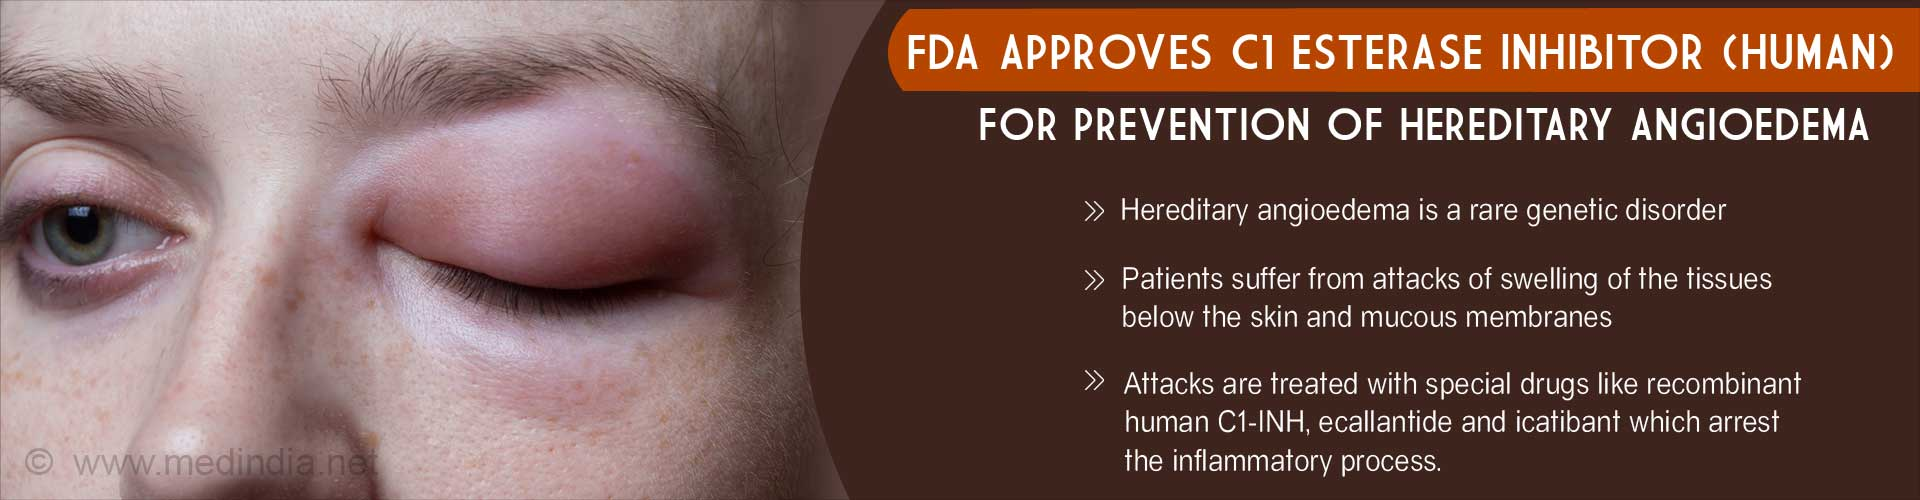 Health Tip on FDA Approved C1 Esterase Inhibitor (Human) for Hereditary Angioedema